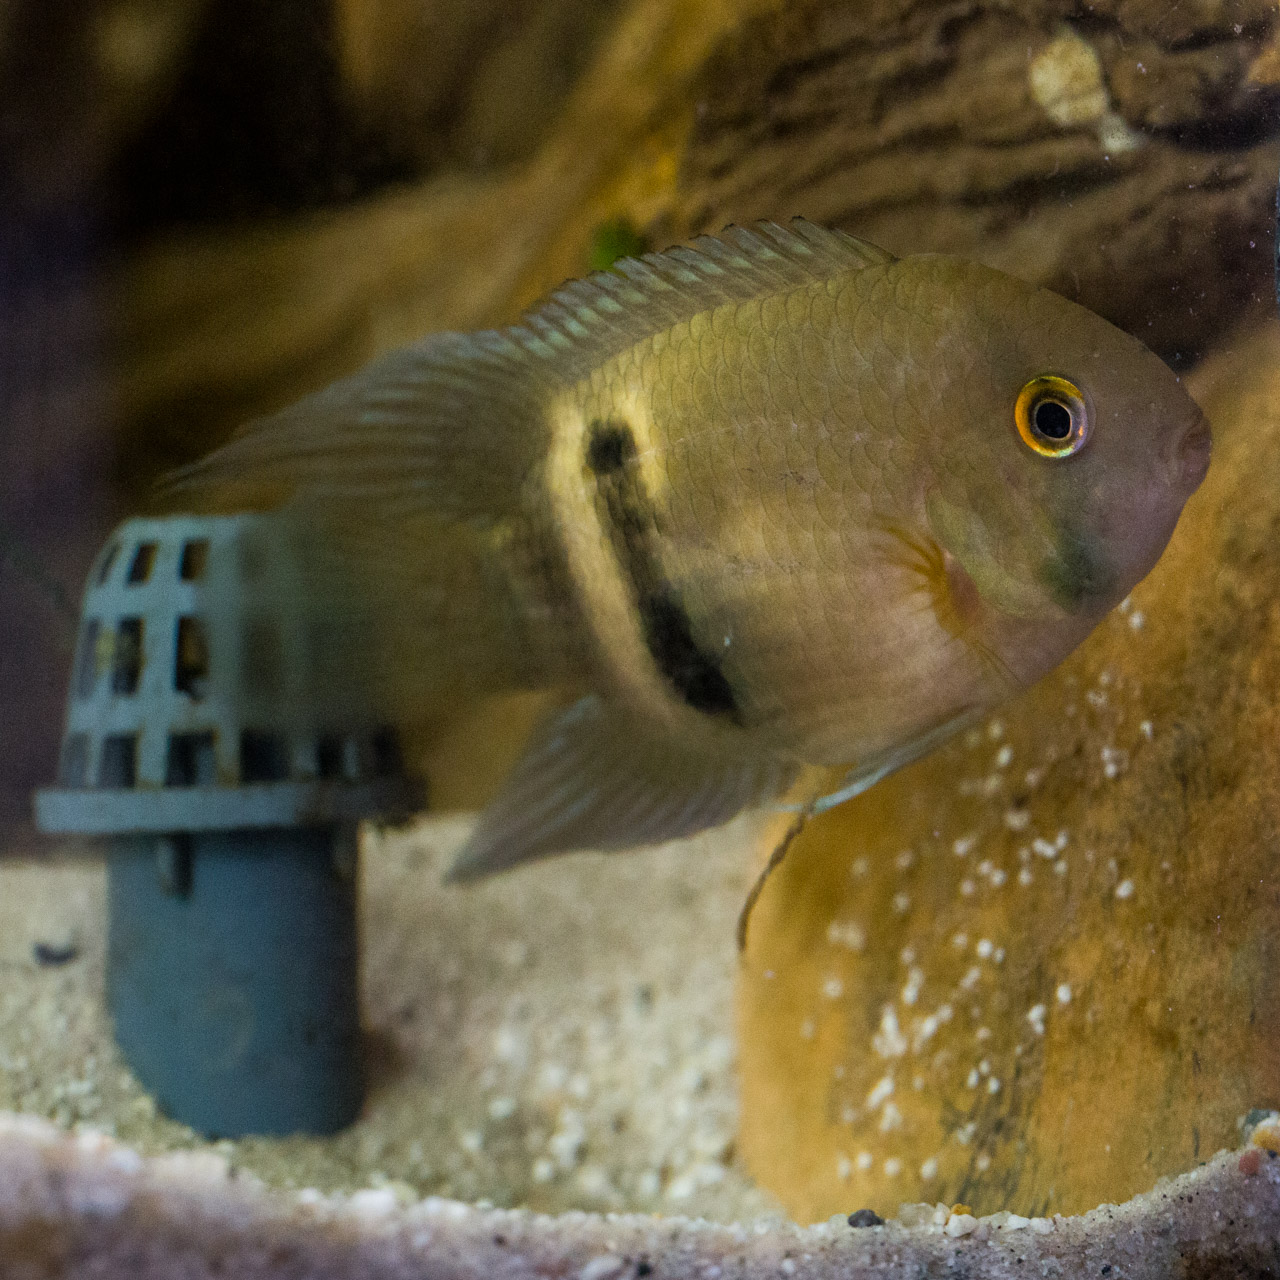 A keyhole cichlid defending its eggs that were laid on a rocky surface near the filter drain.